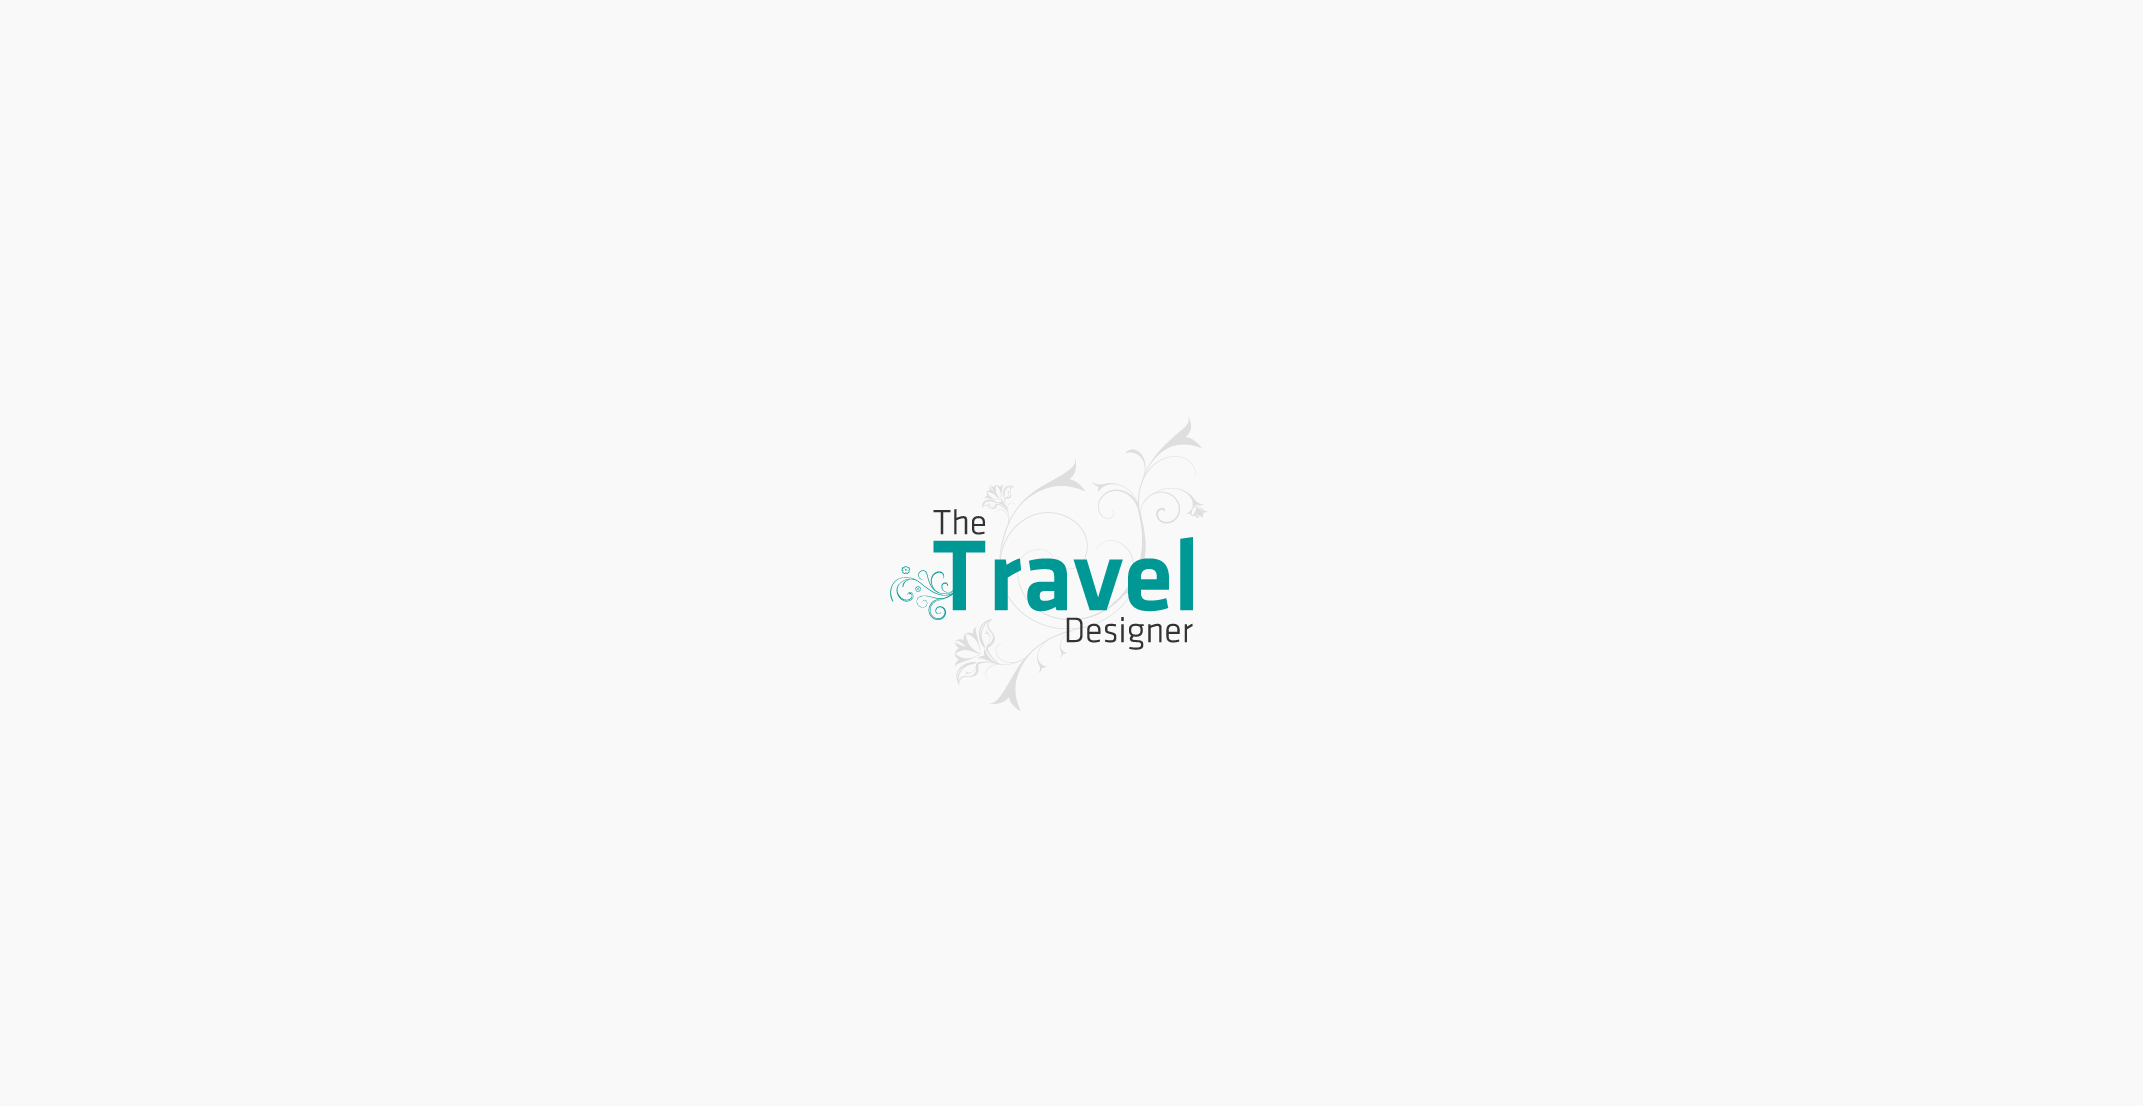 Logo designe for The Travel Designer